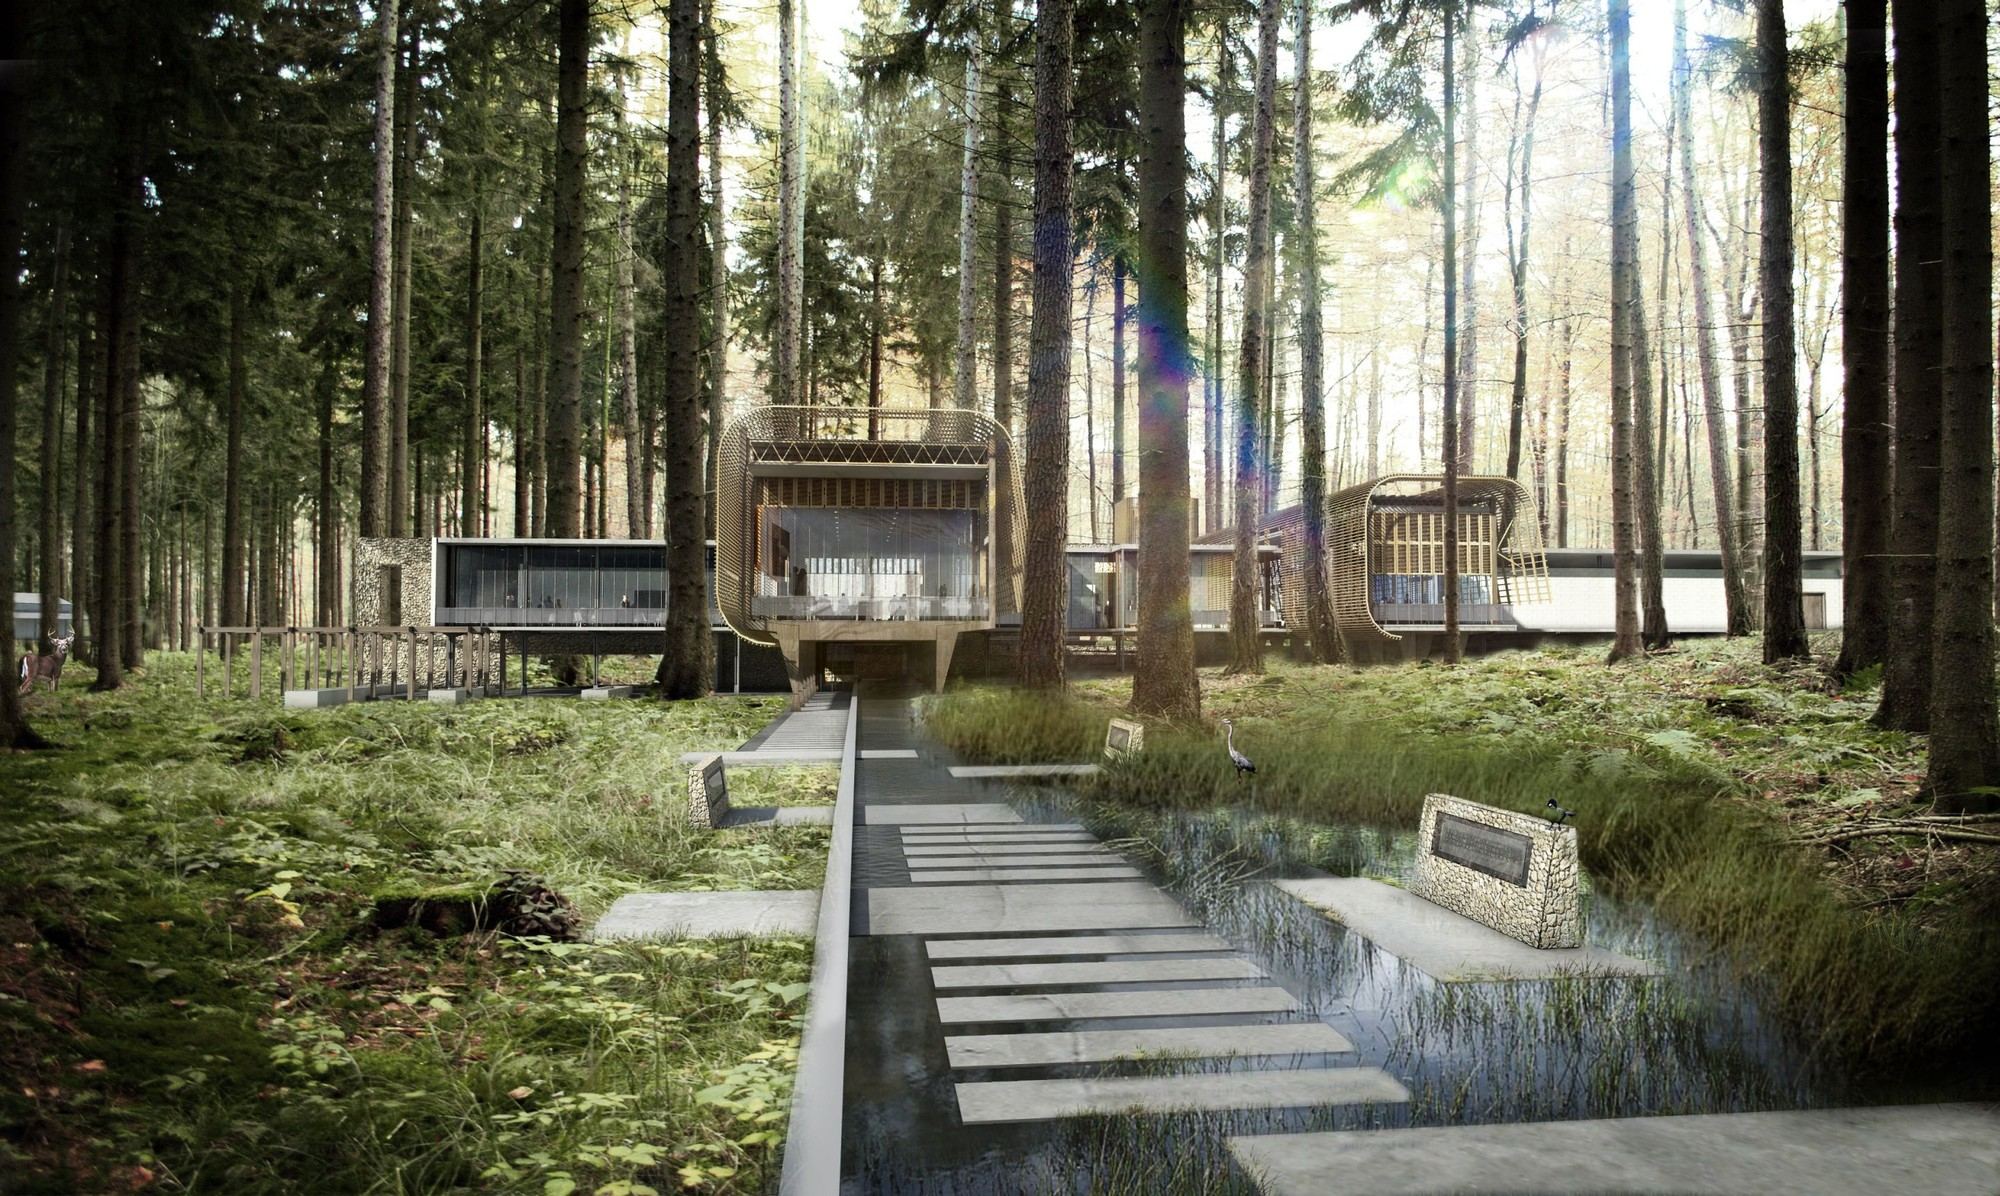 Boogertman Wins Competition to Design Educational Centre in Kenya's Karura Forest, Visualisation (day). Image Courtesy of Boogertman + Partners